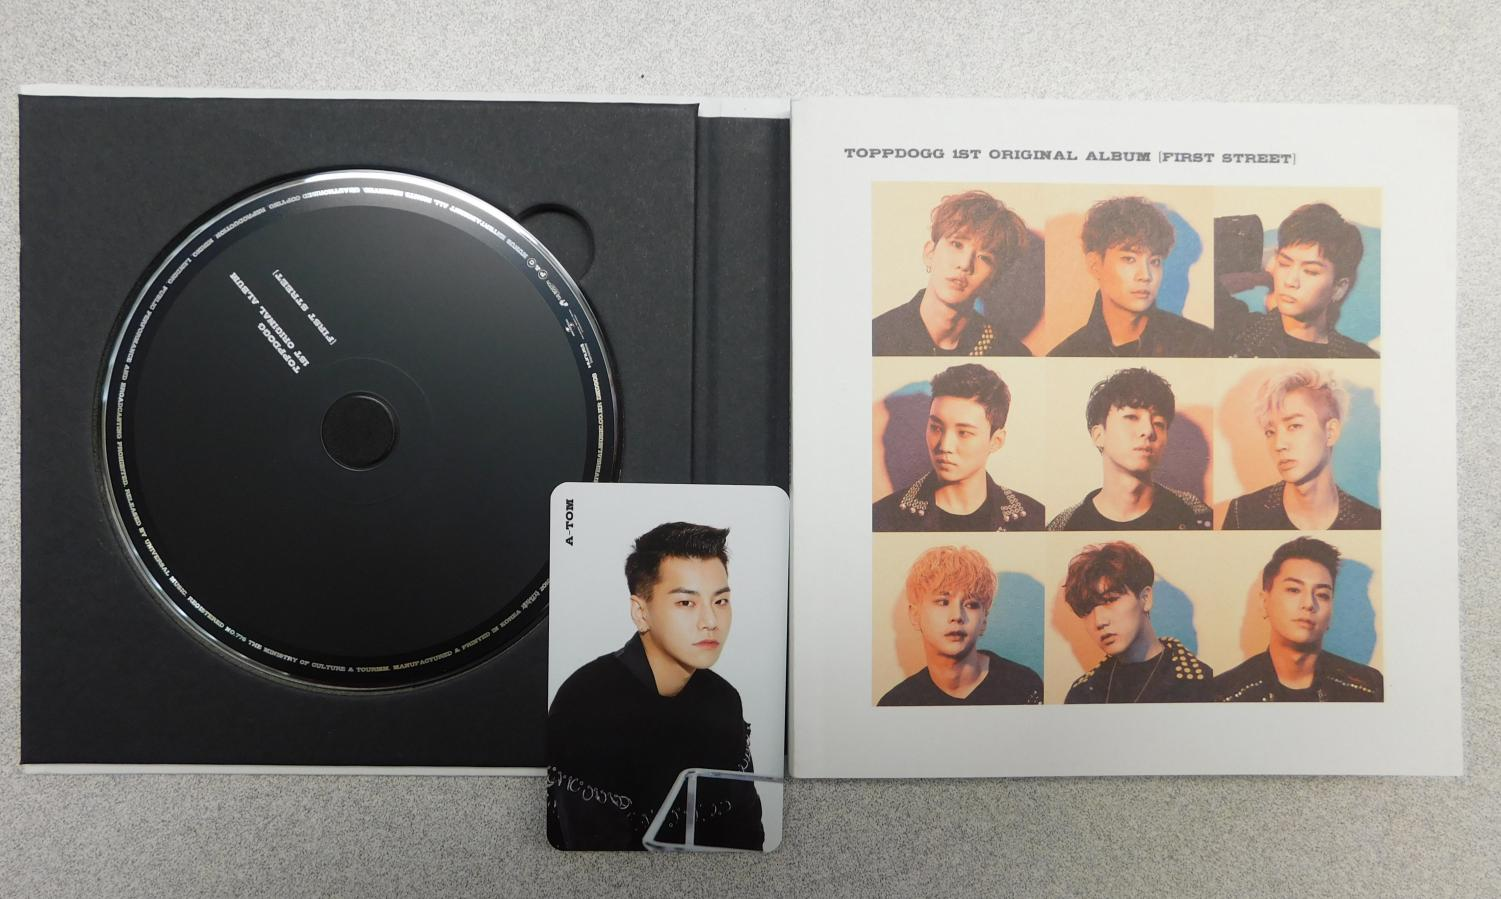 The physical copy of Topp Dogg's first original album